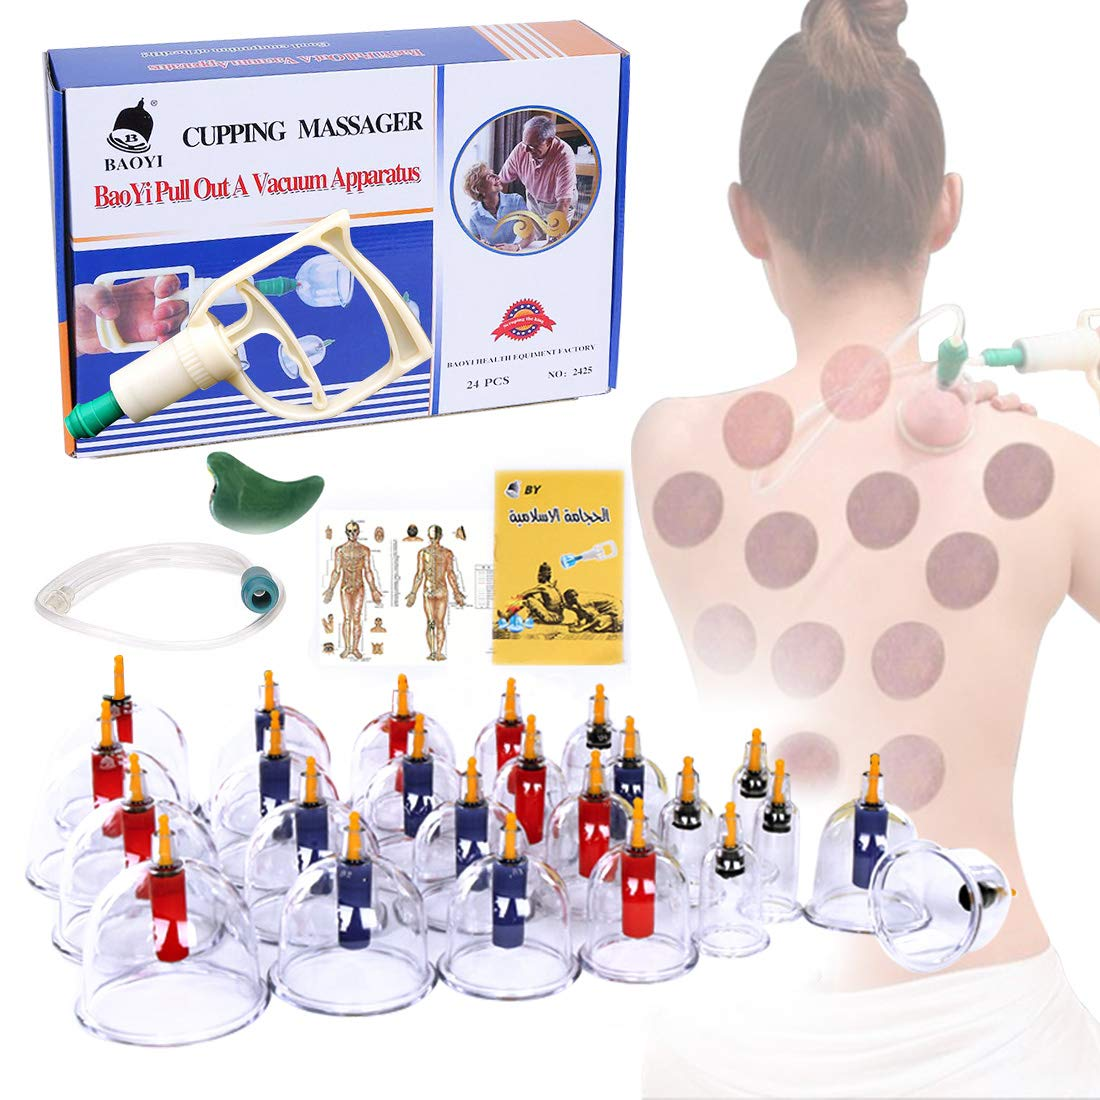 Cupping Therapy Sets, DEFUNX Vacuum Suction 24 Cups Sets for Cellulite Cupping Massage,Chinese Cupping Therapy Pump by DEFUNX